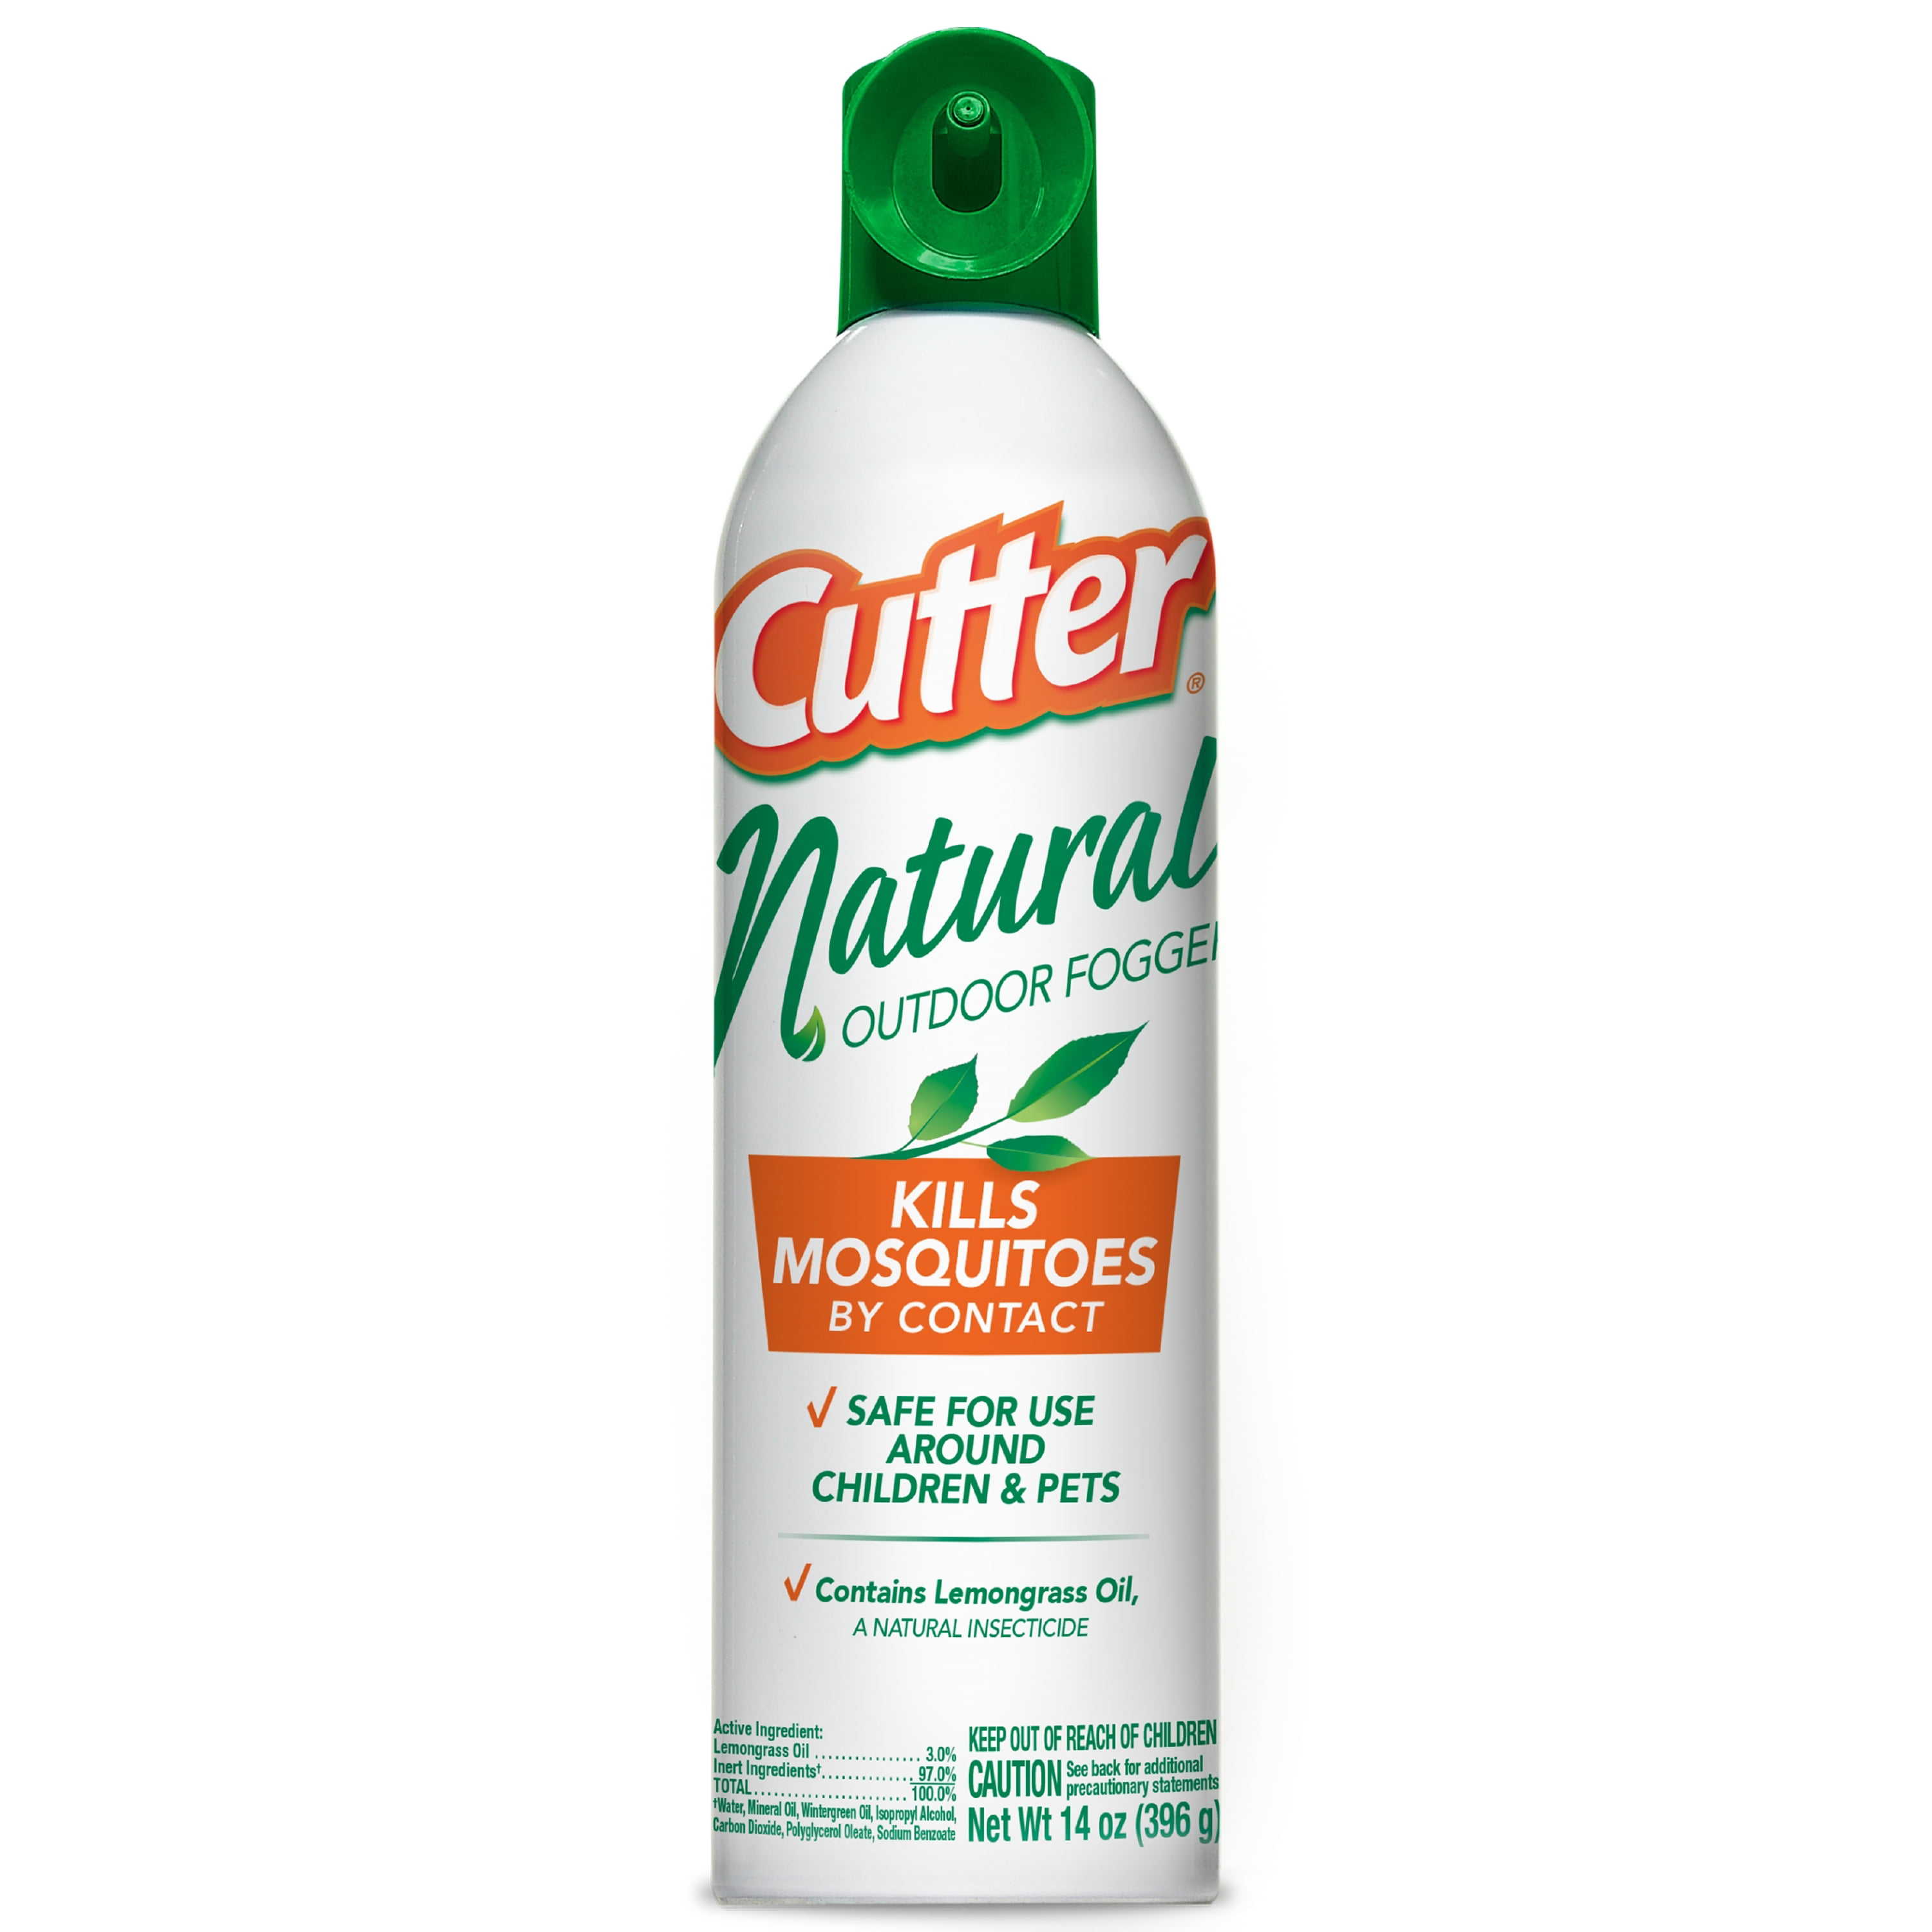 Cutter Natural Outdoor Fogger Insect Repellent 16 Ounce Walmart Com Walmart Com,Rudolph The Red Nosed Reindeer Dvd Cover